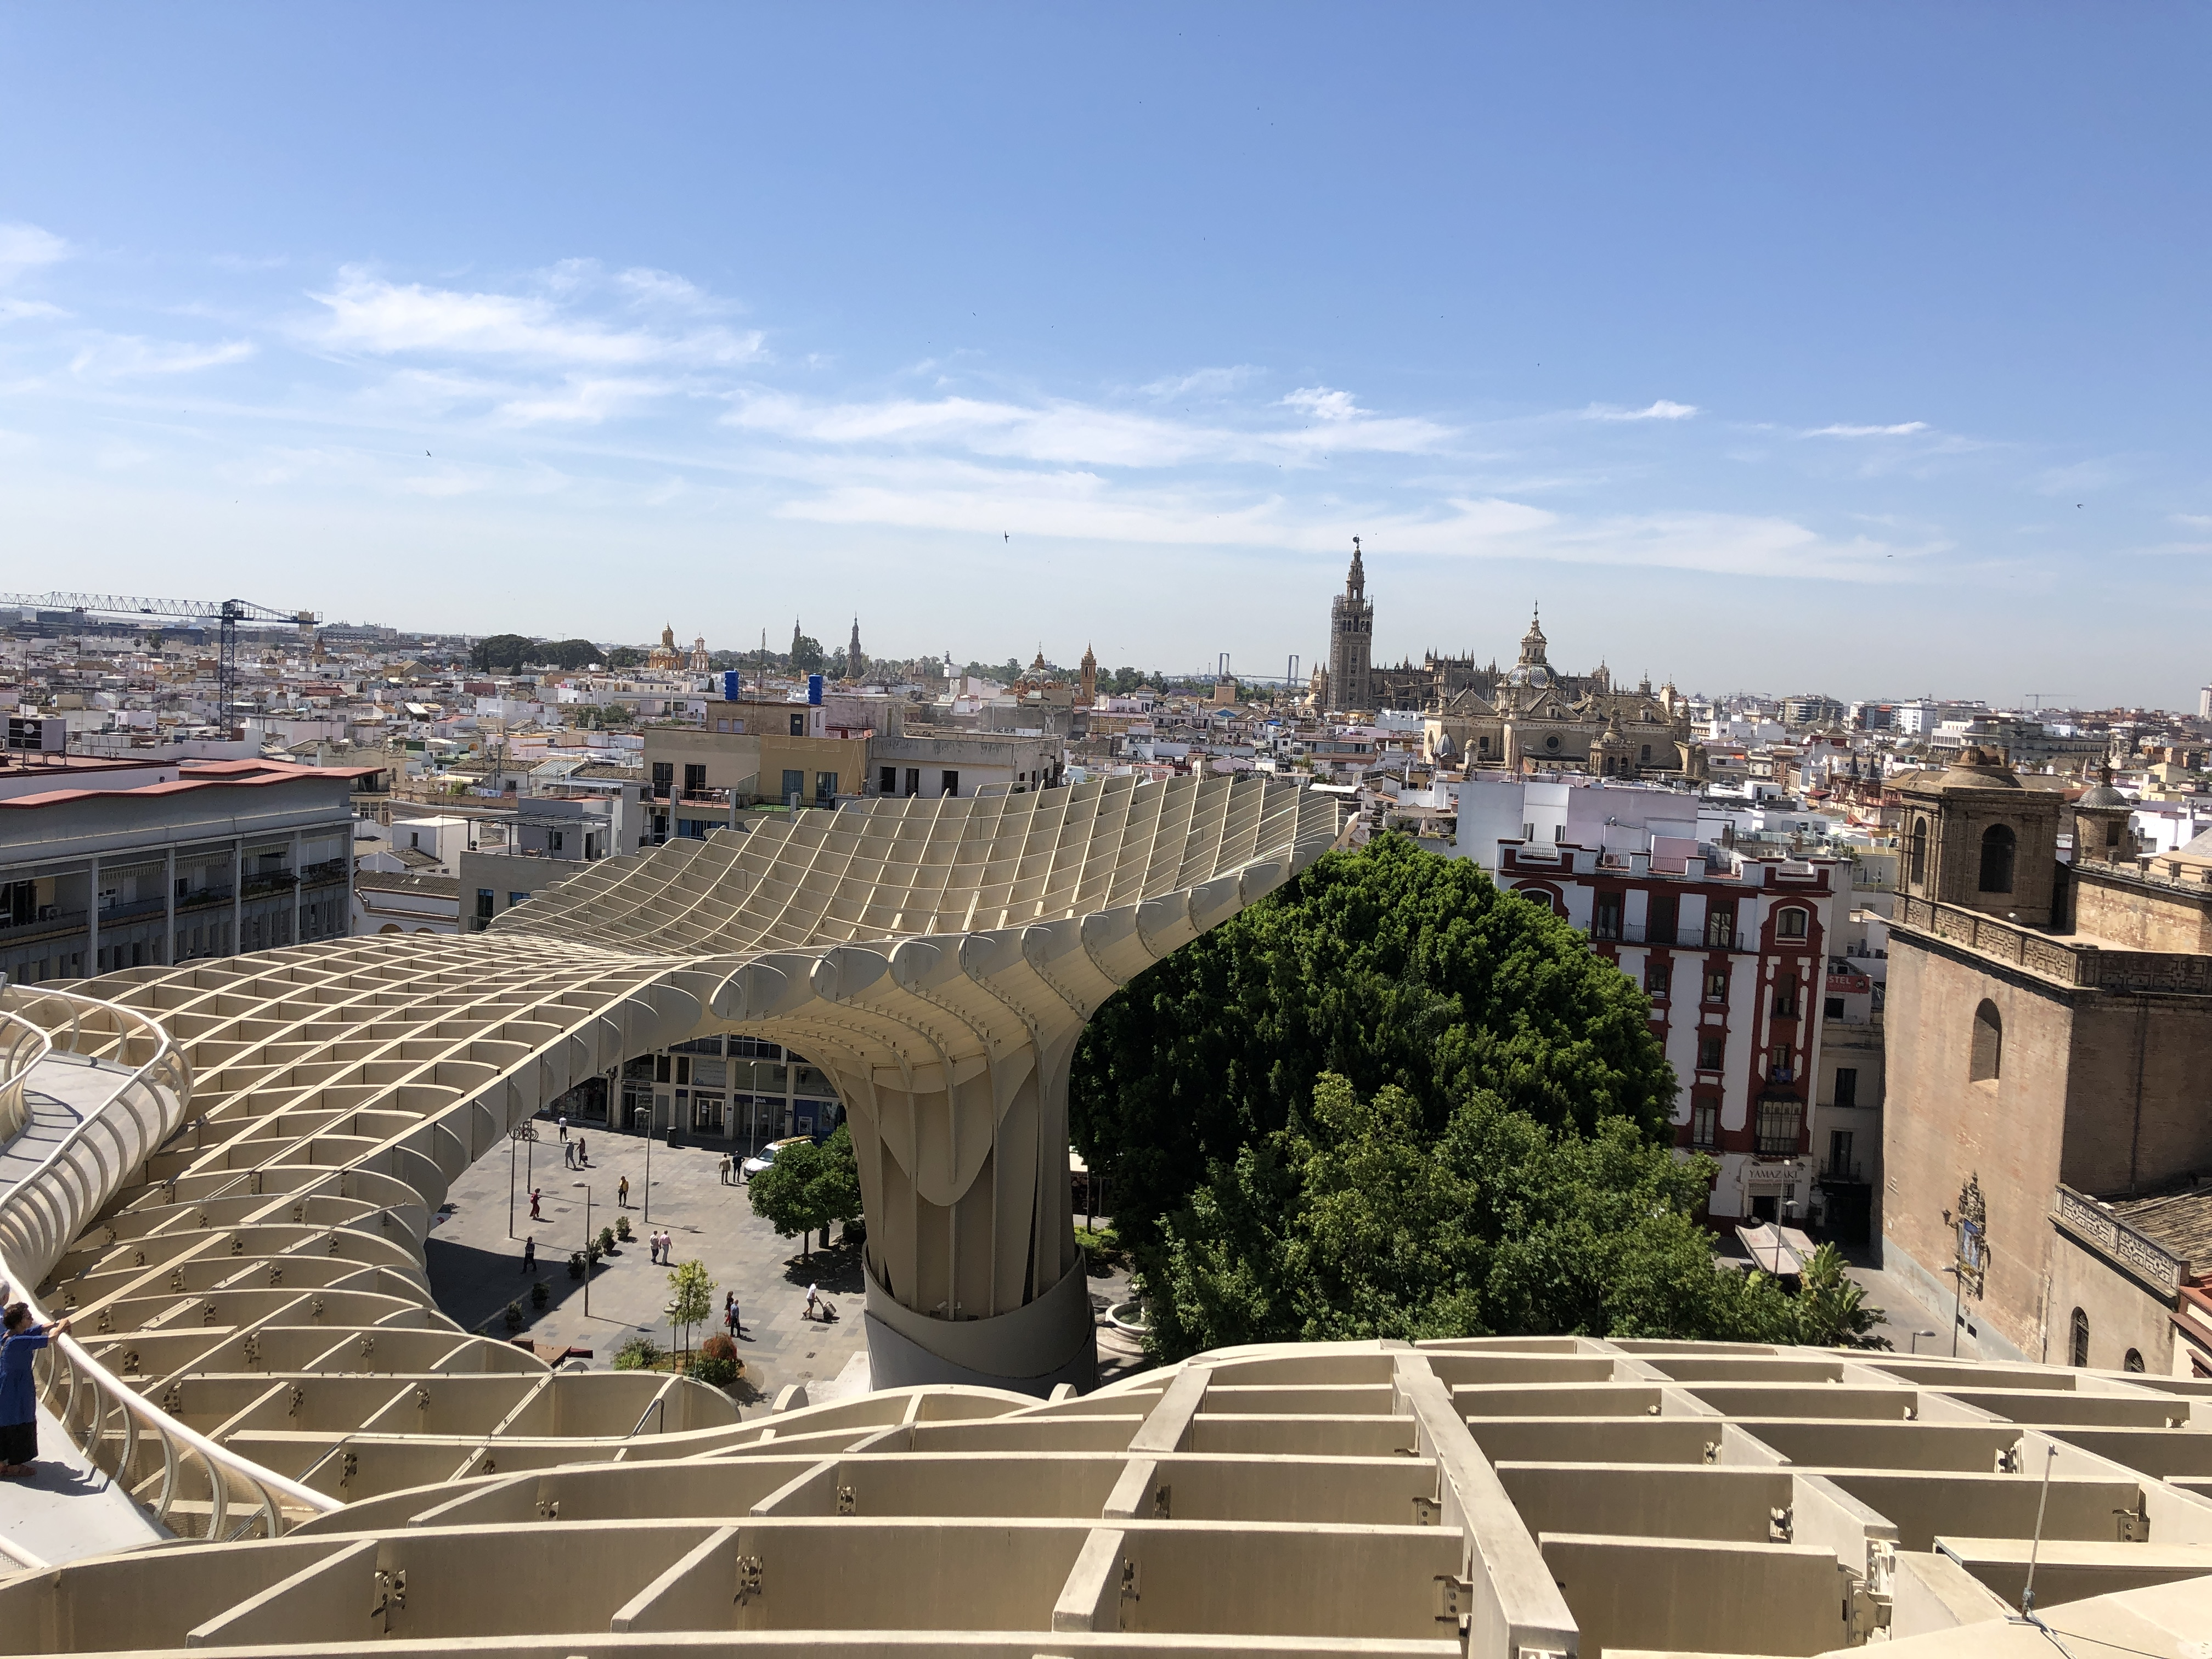 360 degree view of Seville.